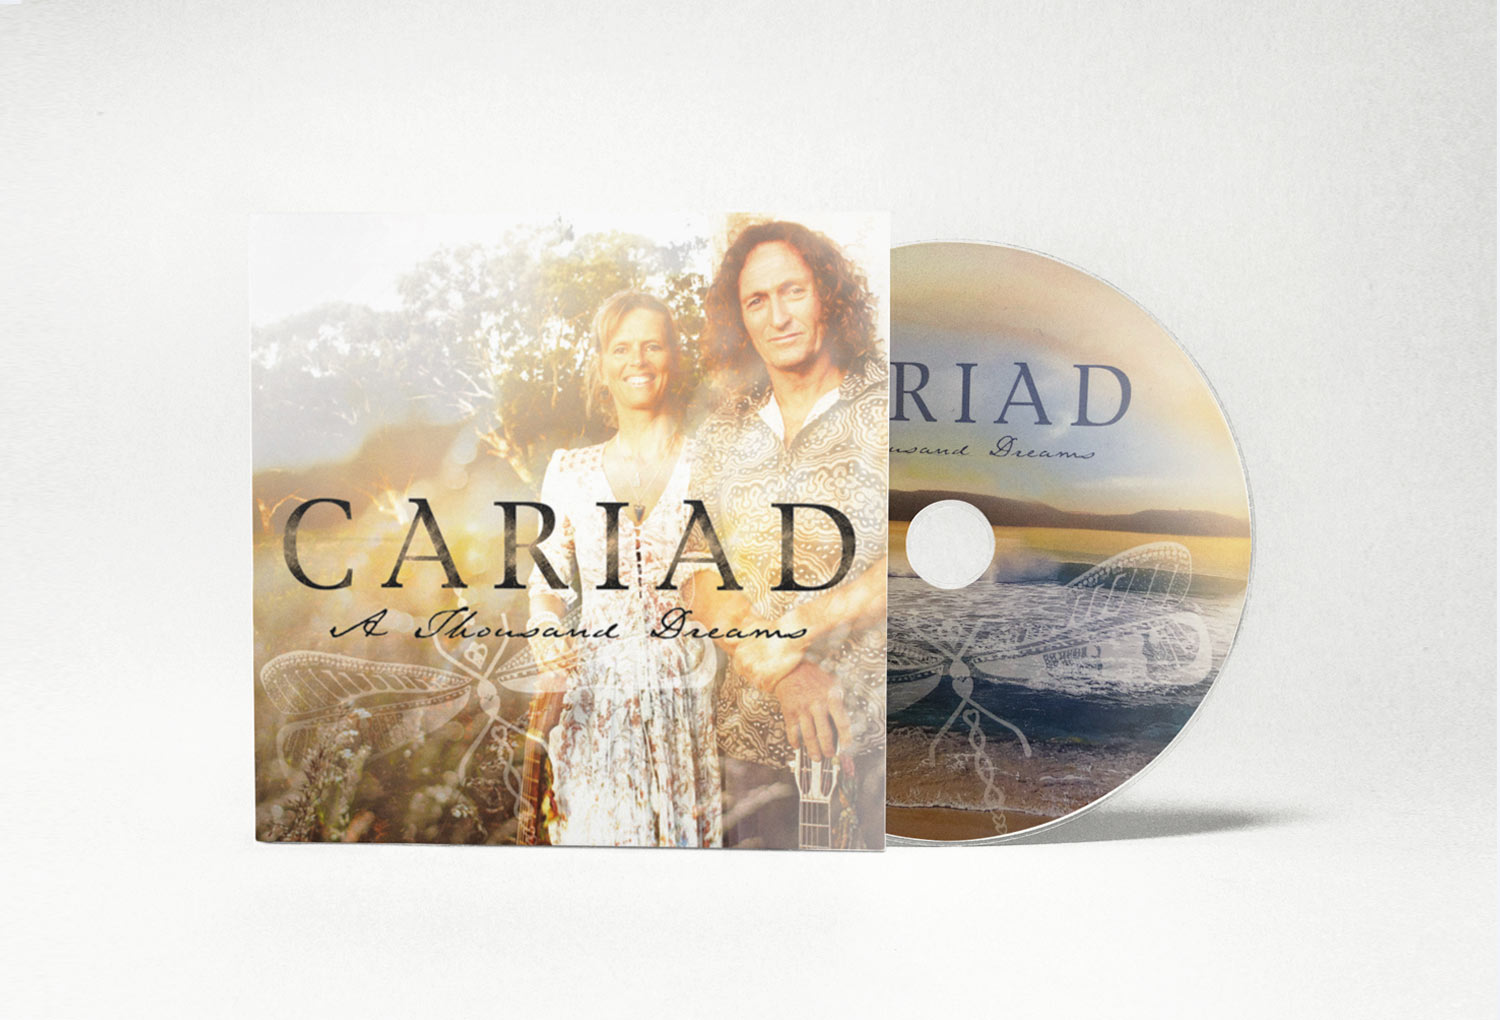 Cariad Celtic Music CD Cover Music Graphic Design By Mango Tree Media